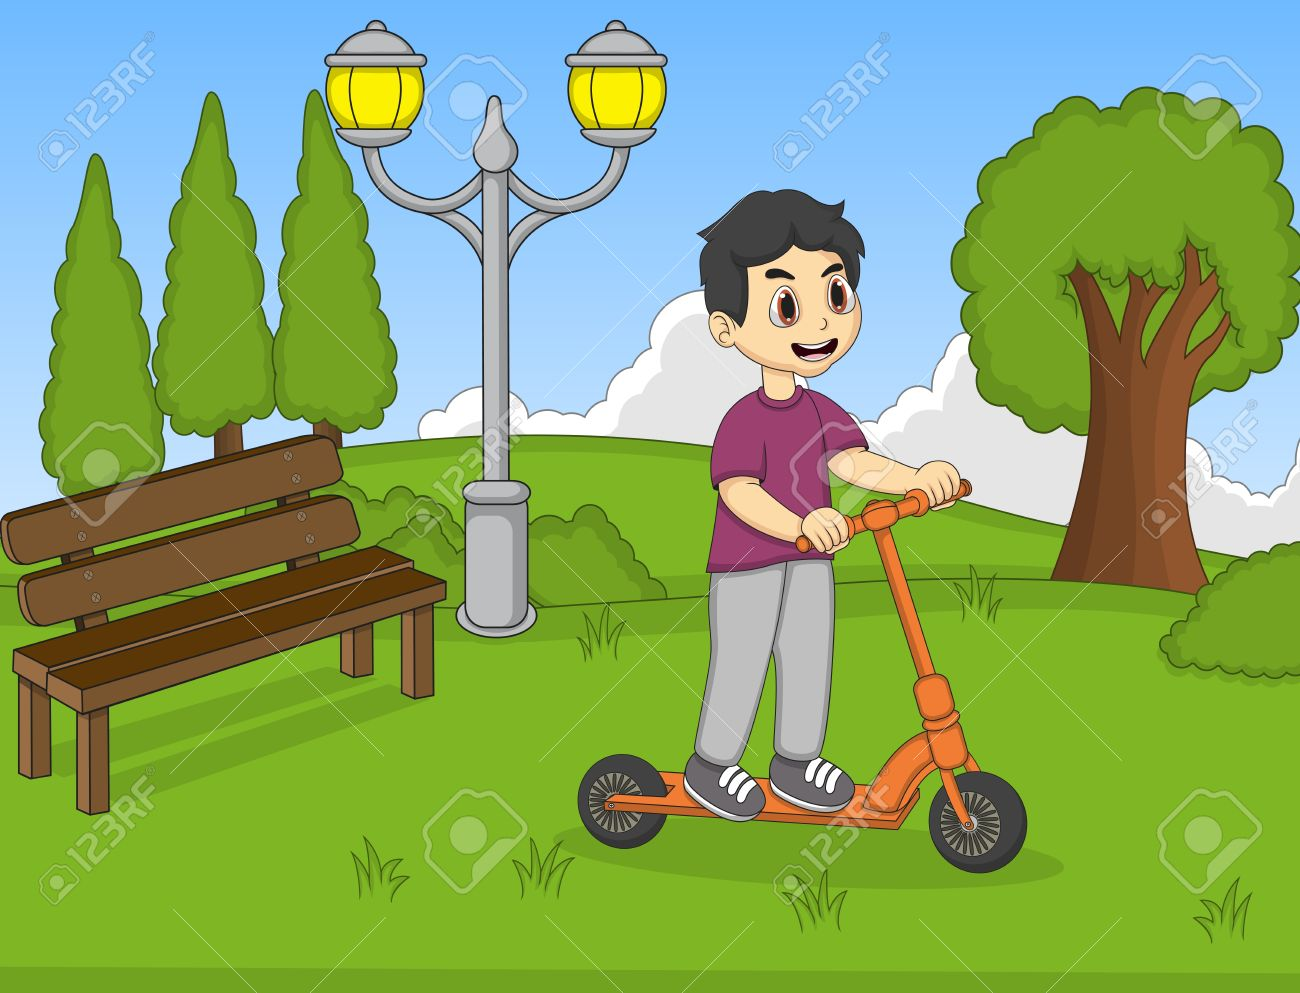 Friendly Clipart Play School Kid - Rainbow With Garden And Children, HD Png  Download - vhv